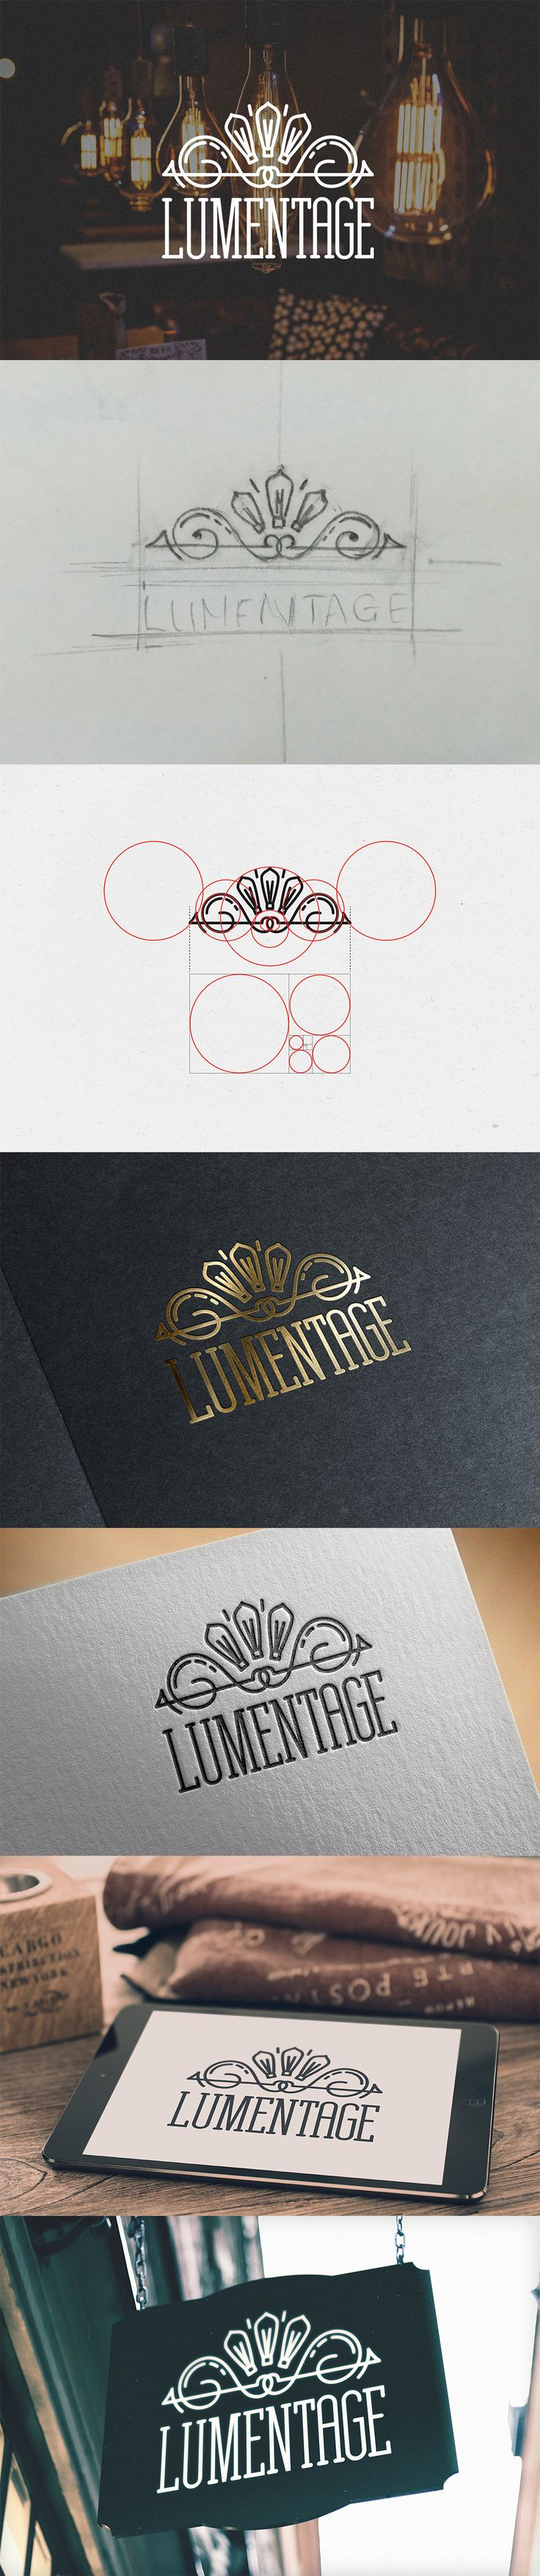 Logo Lumentage brand id identity graphic design golden ratio illumination Edisson bulb hand-drawn logo inspiration https://www.behance.net/gallery/46789843/Logo-Lumentage